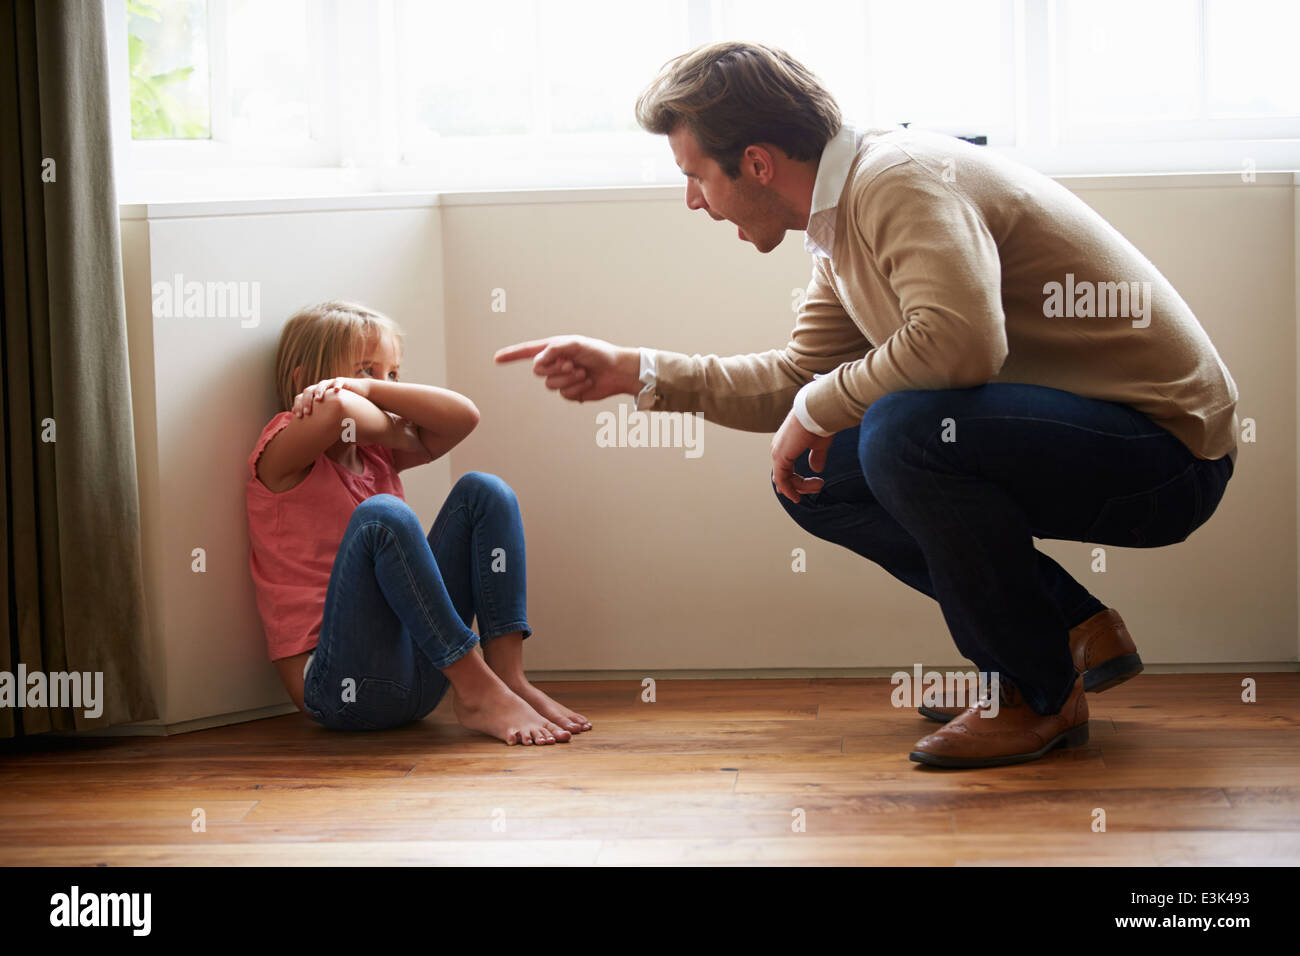 Father Shouting At Young Daughter - Stock Image